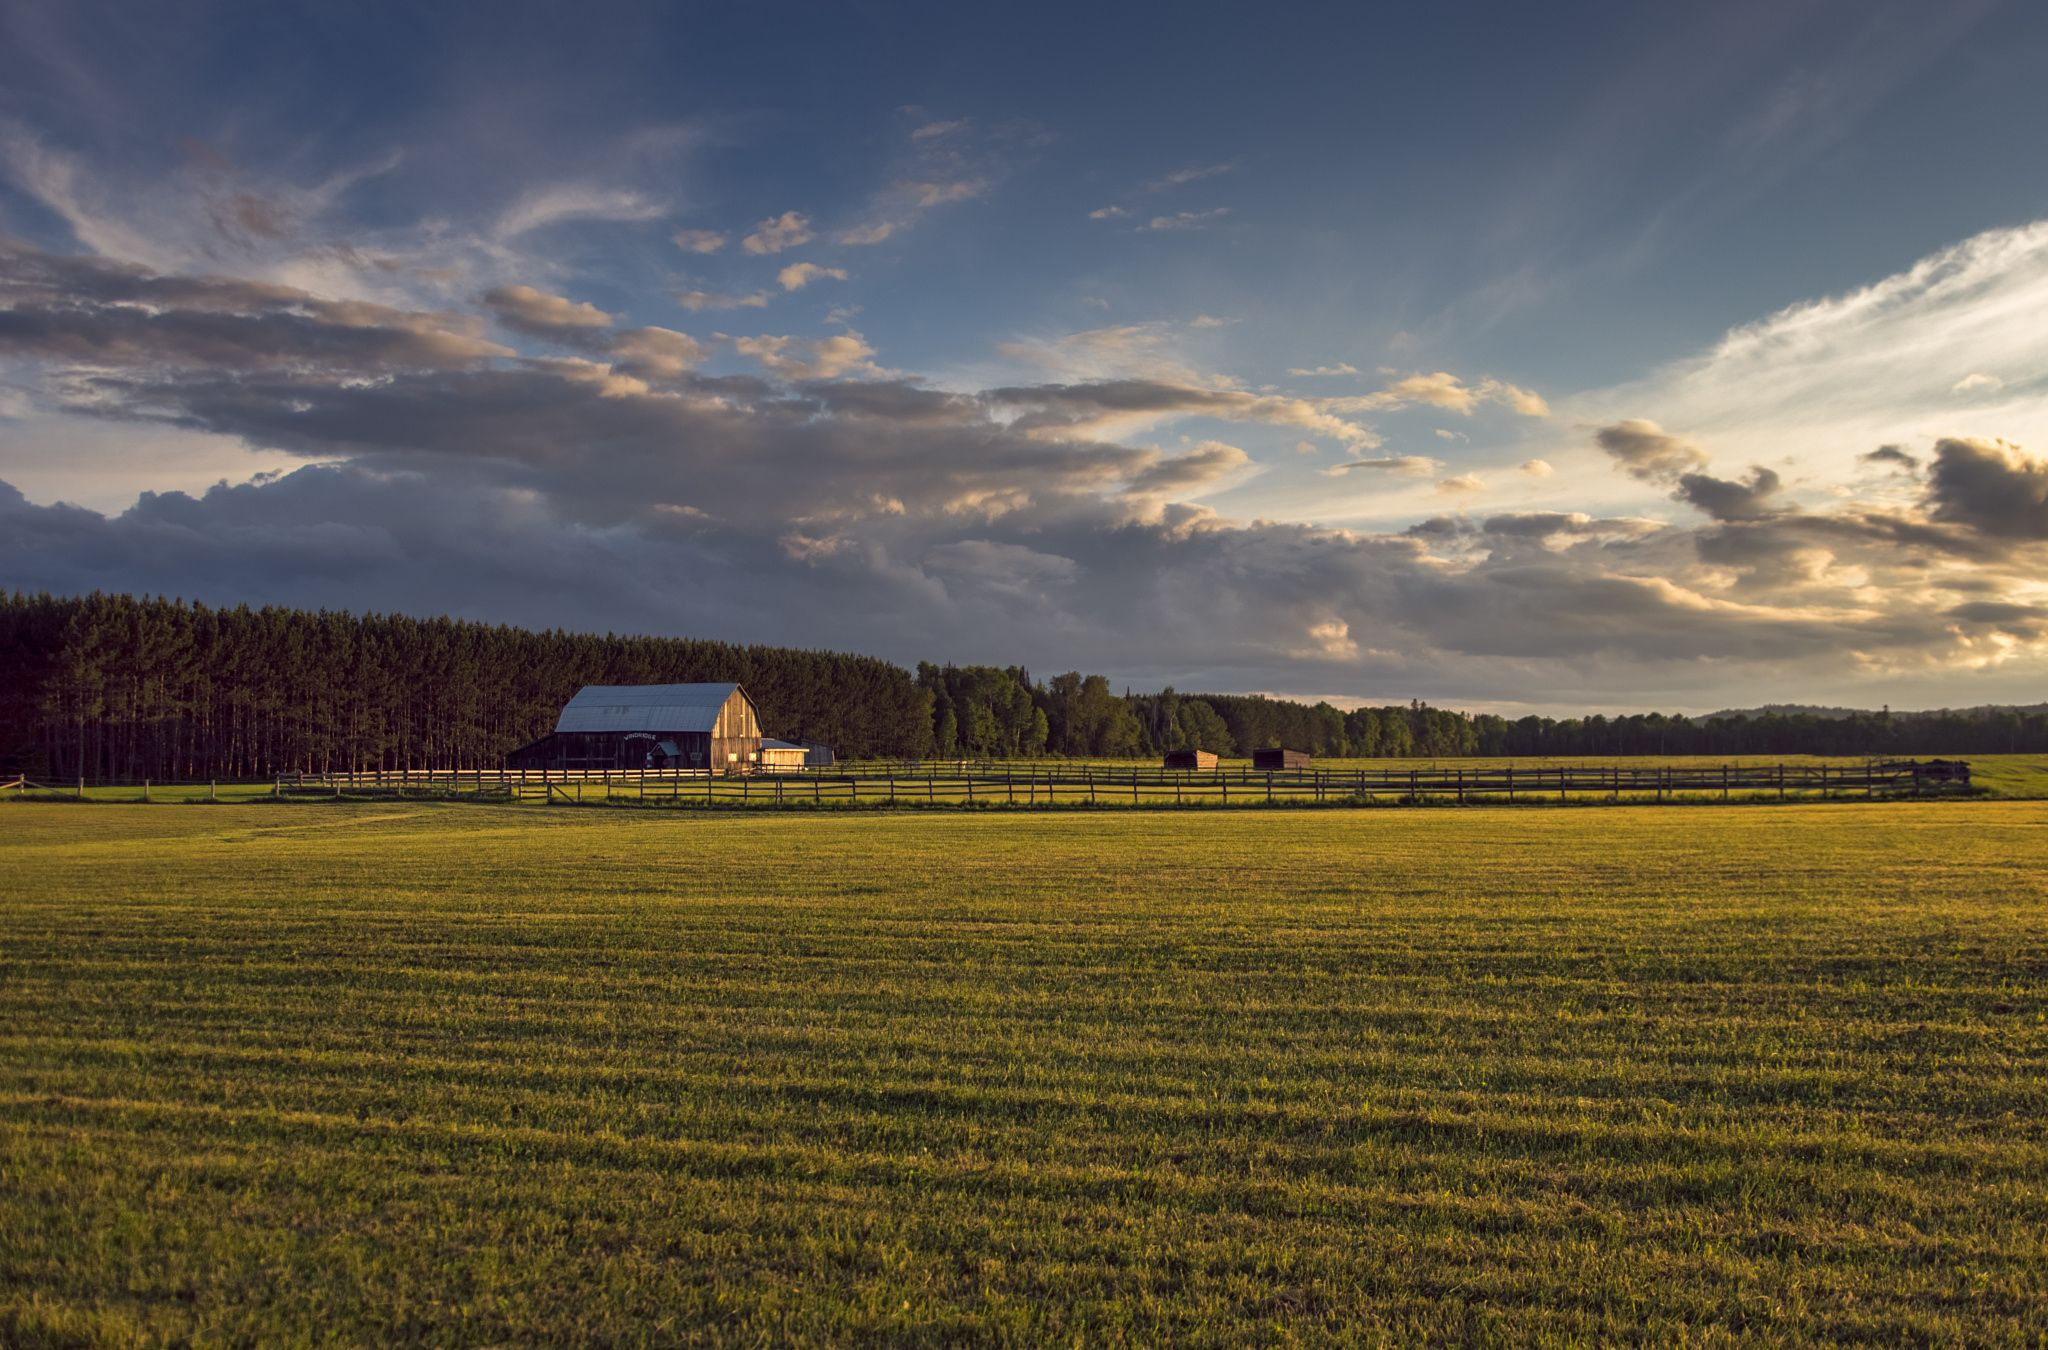 Photograph Country Life by Lee Bodson on 500px